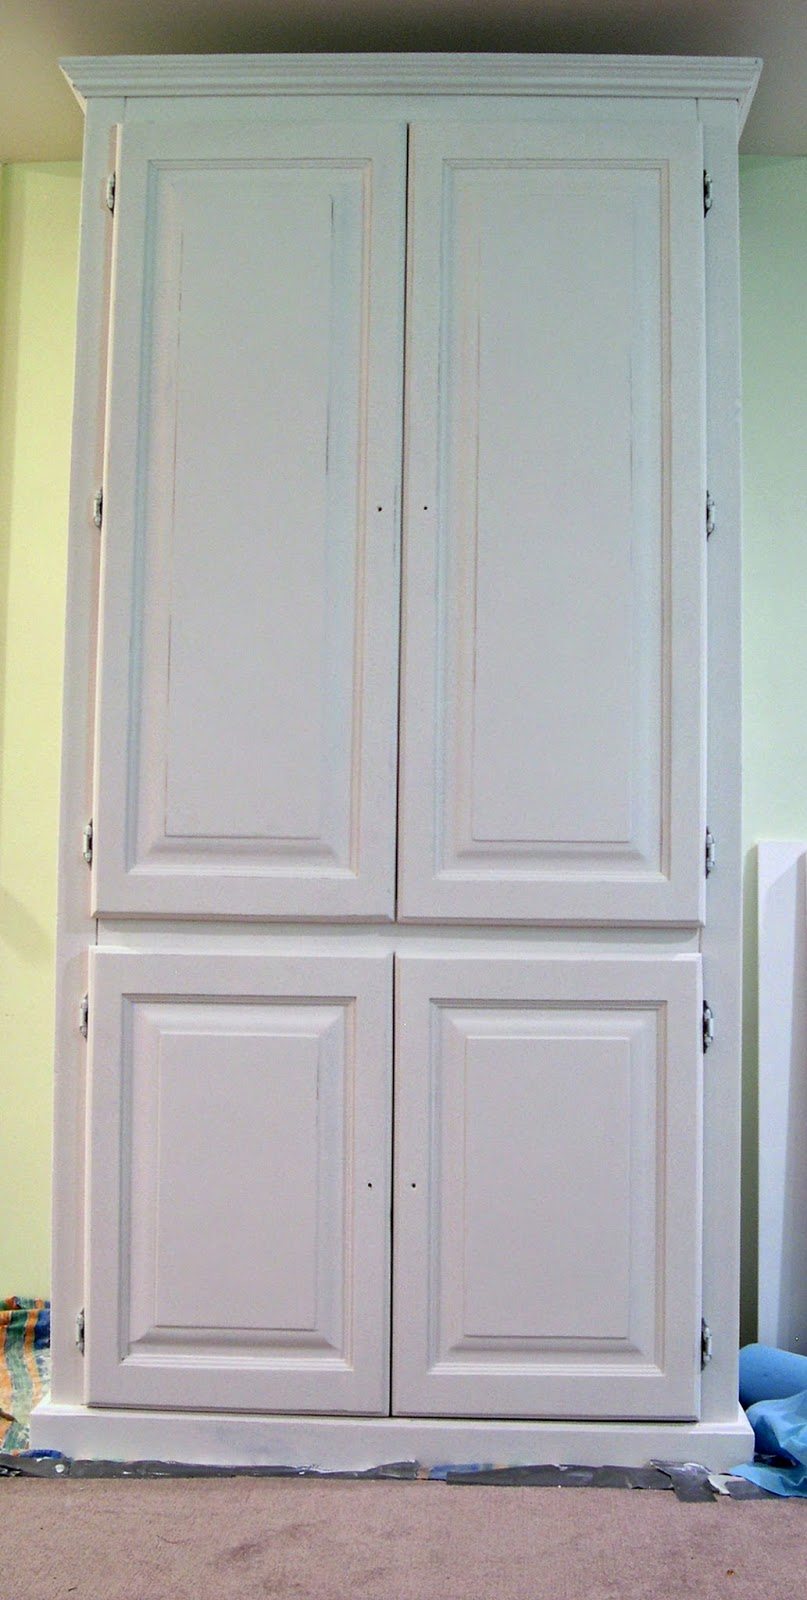 Cm Shaw Studios How To Install Cabinet Doors On An